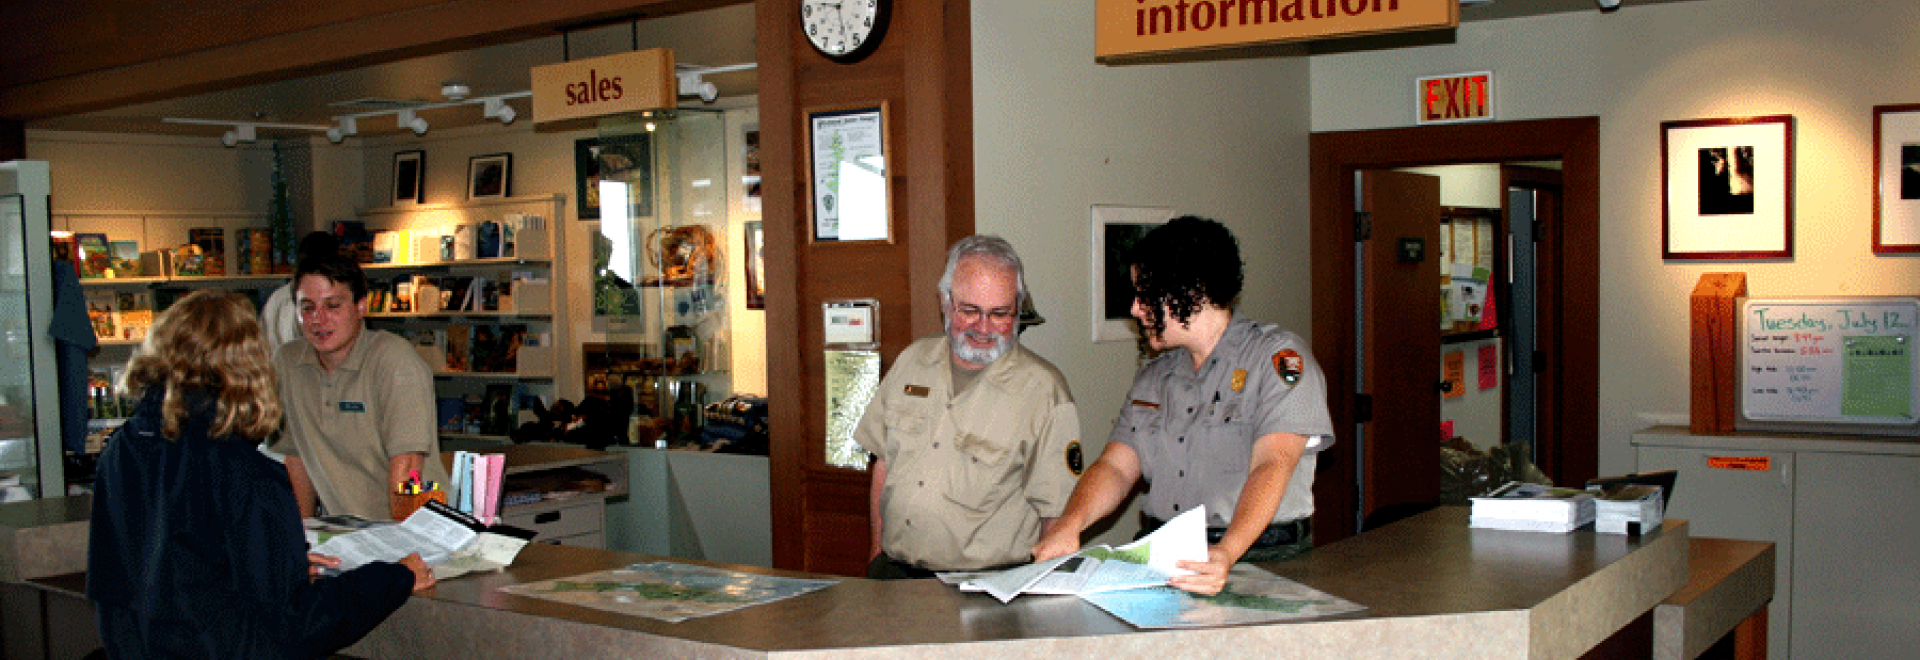 Thomas H. Kuchel Visitor Center staff and volunteers helping visitors